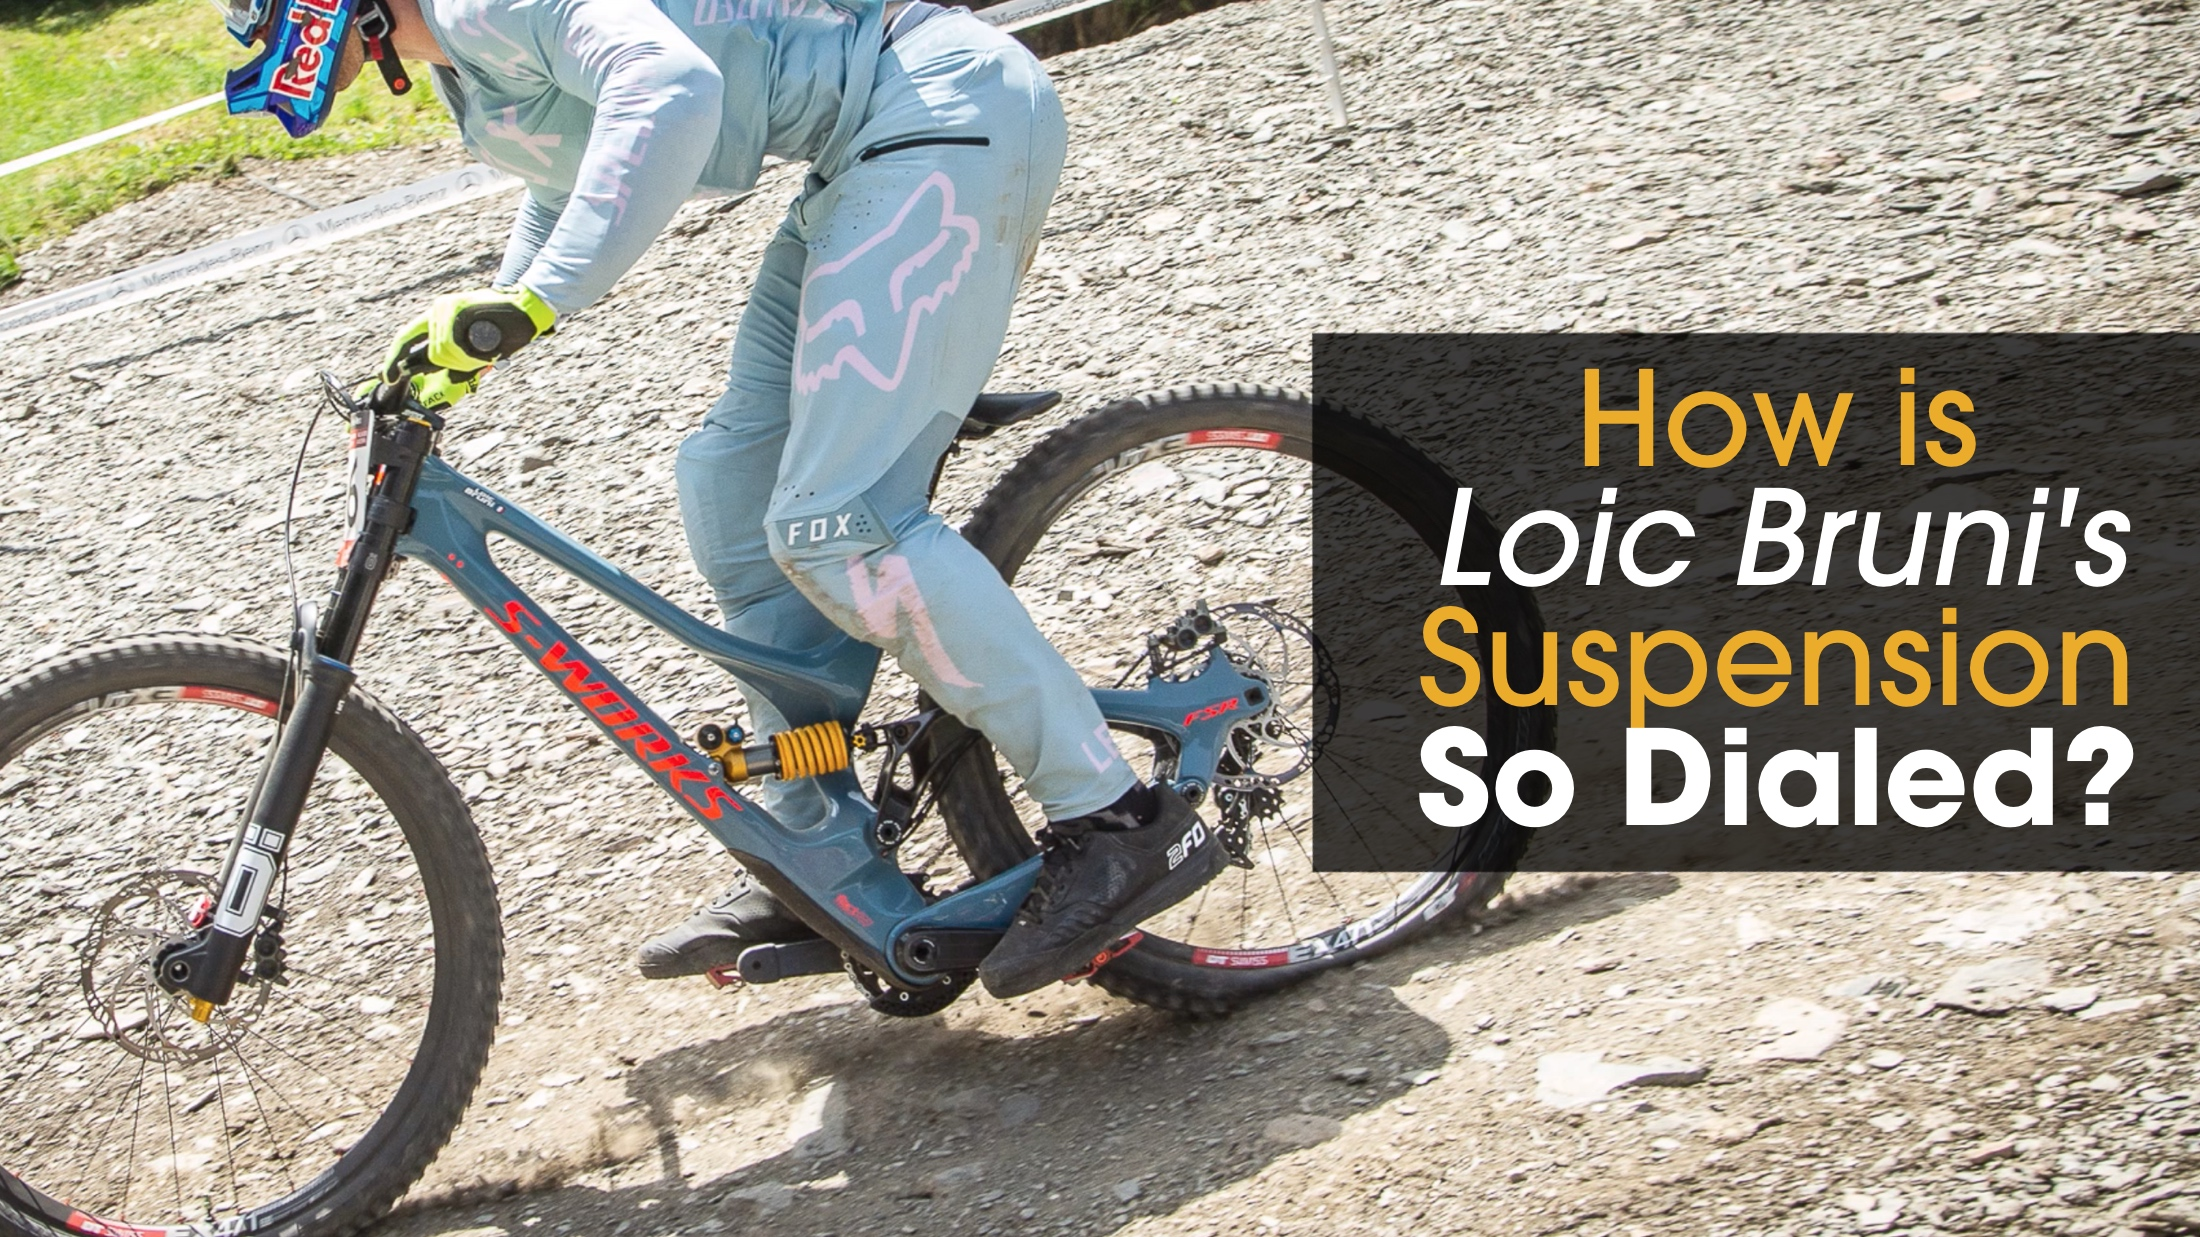 Why Does Loic Bruni's Suspension Work So Well? - Mountain Biking